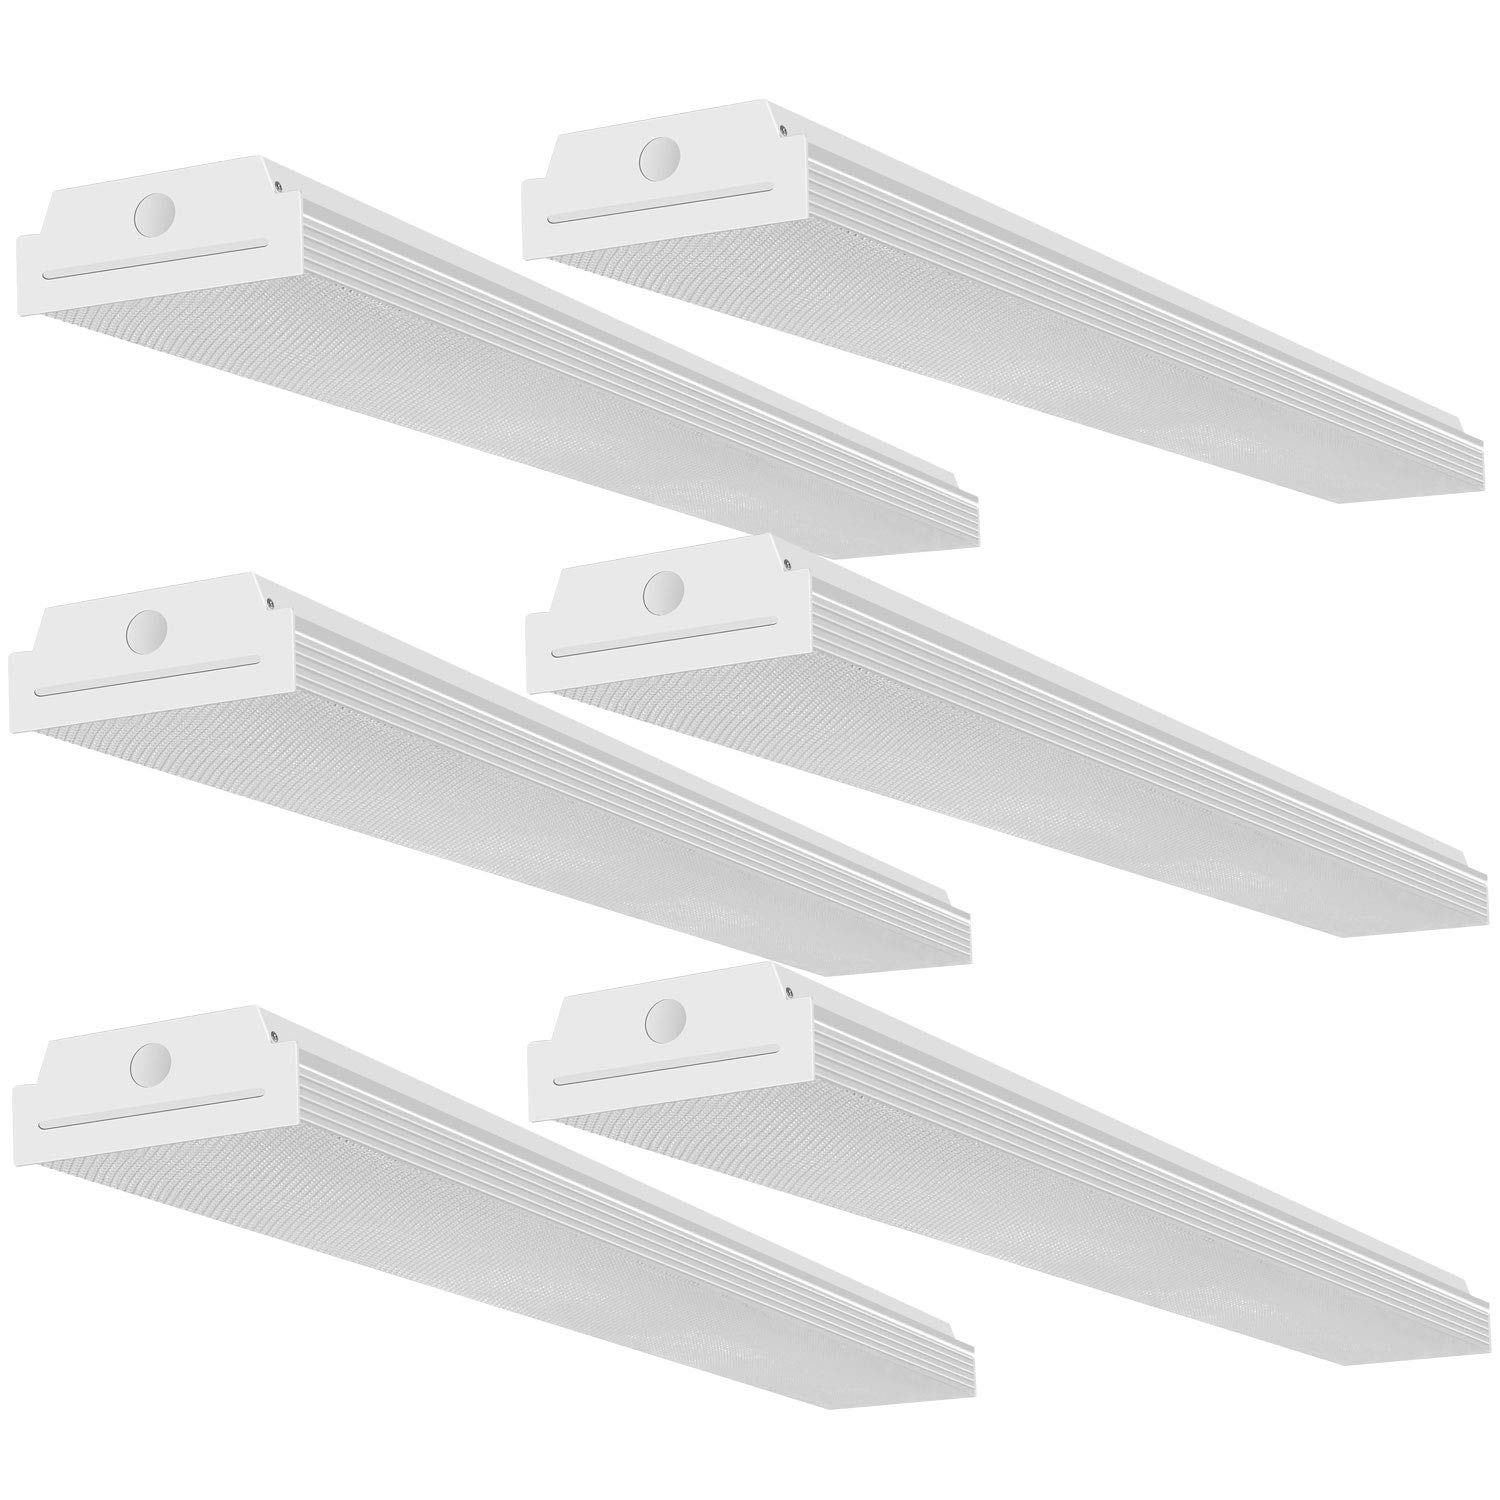 FaithSail 4FT LED Wraparound 40W Wrap Light, 4400lm, 4000K Neutral White, 4 Foot LED Shop Lights for Garage, 4' LED Light Fixtures Ceiling Mount Office Lights, Fluorescent Tube Replacement, 6 Pack